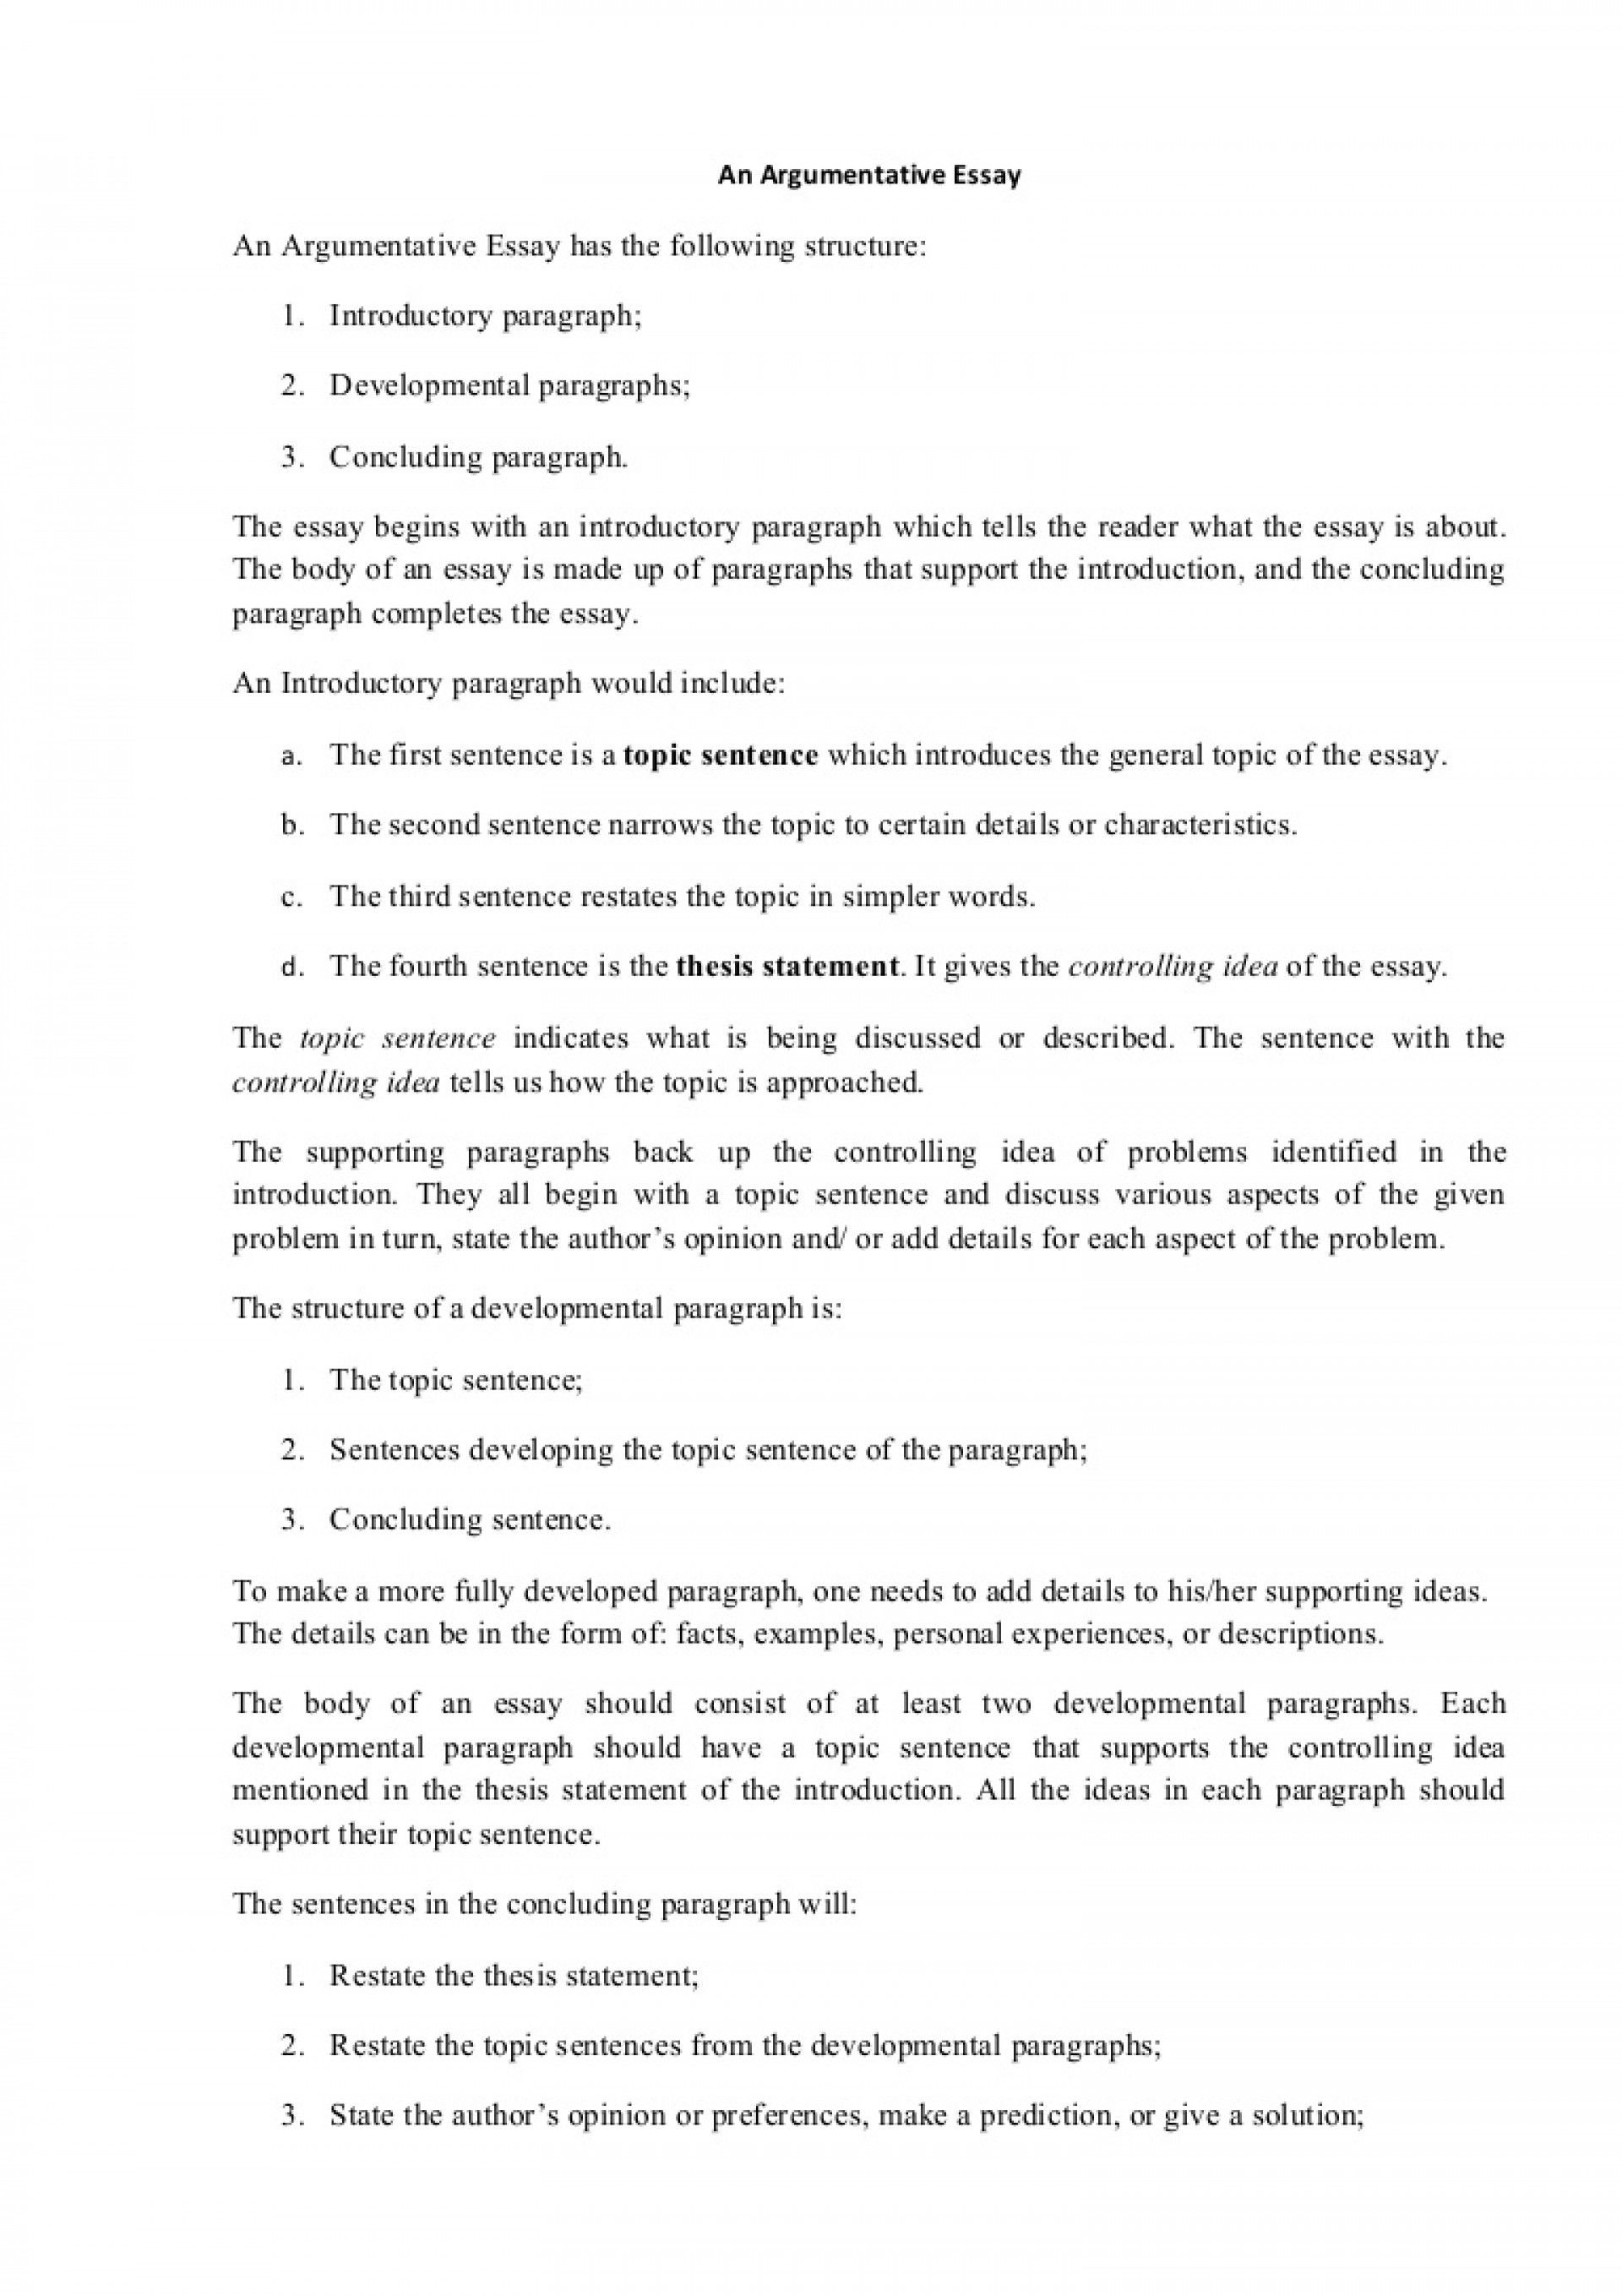 013 Argumentativeessaystructure Phpapp01 Thumbnail Essay Example How To Write An Argumentative Unique Introduction For Pdf 1920